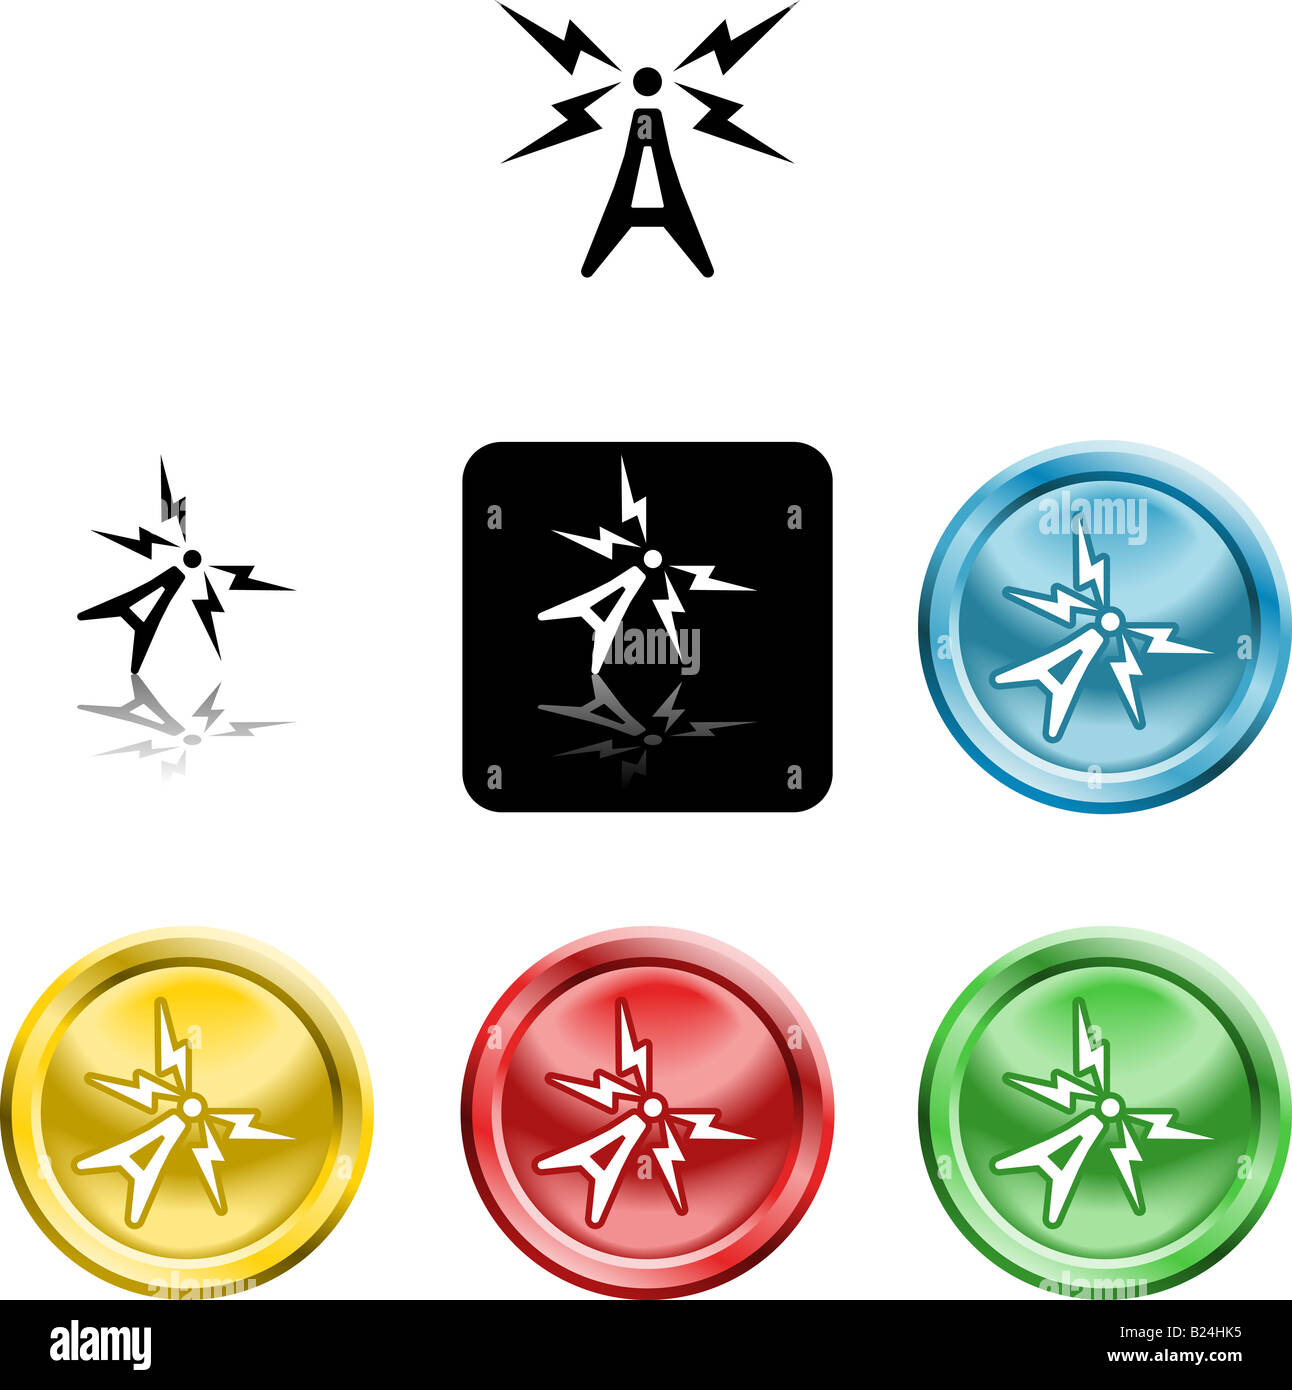 Several versions of an icon symbol of a stylised atenna aerial - Stock Image